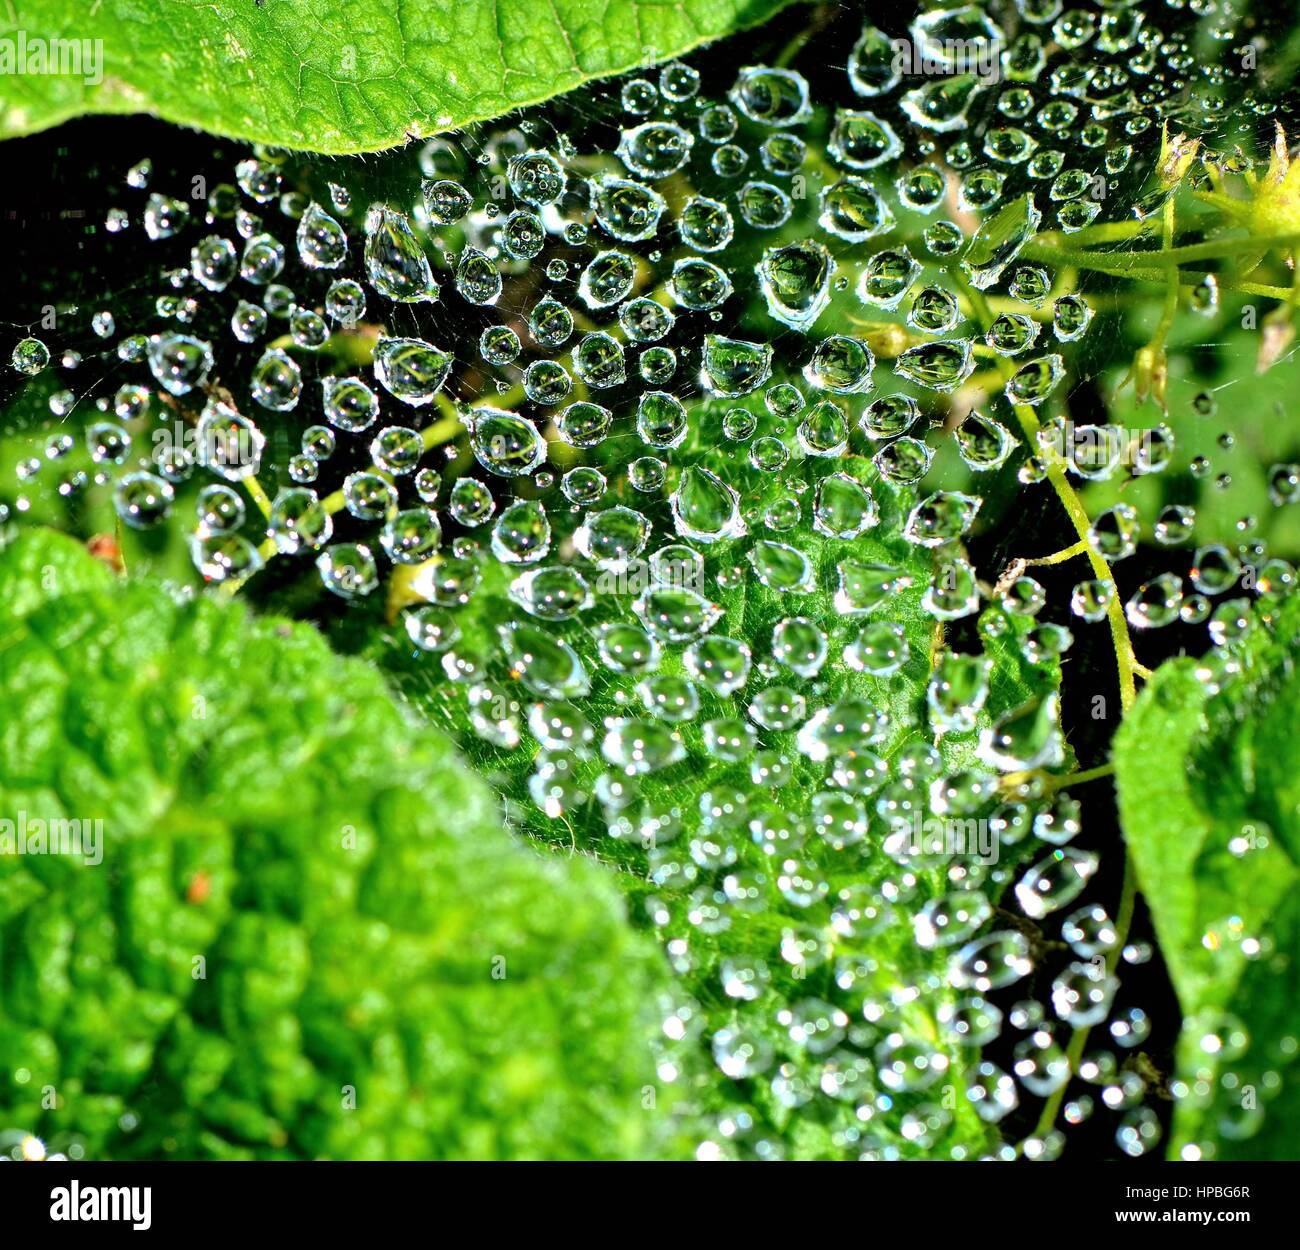 Water Drops on Spider Web - Stock Image